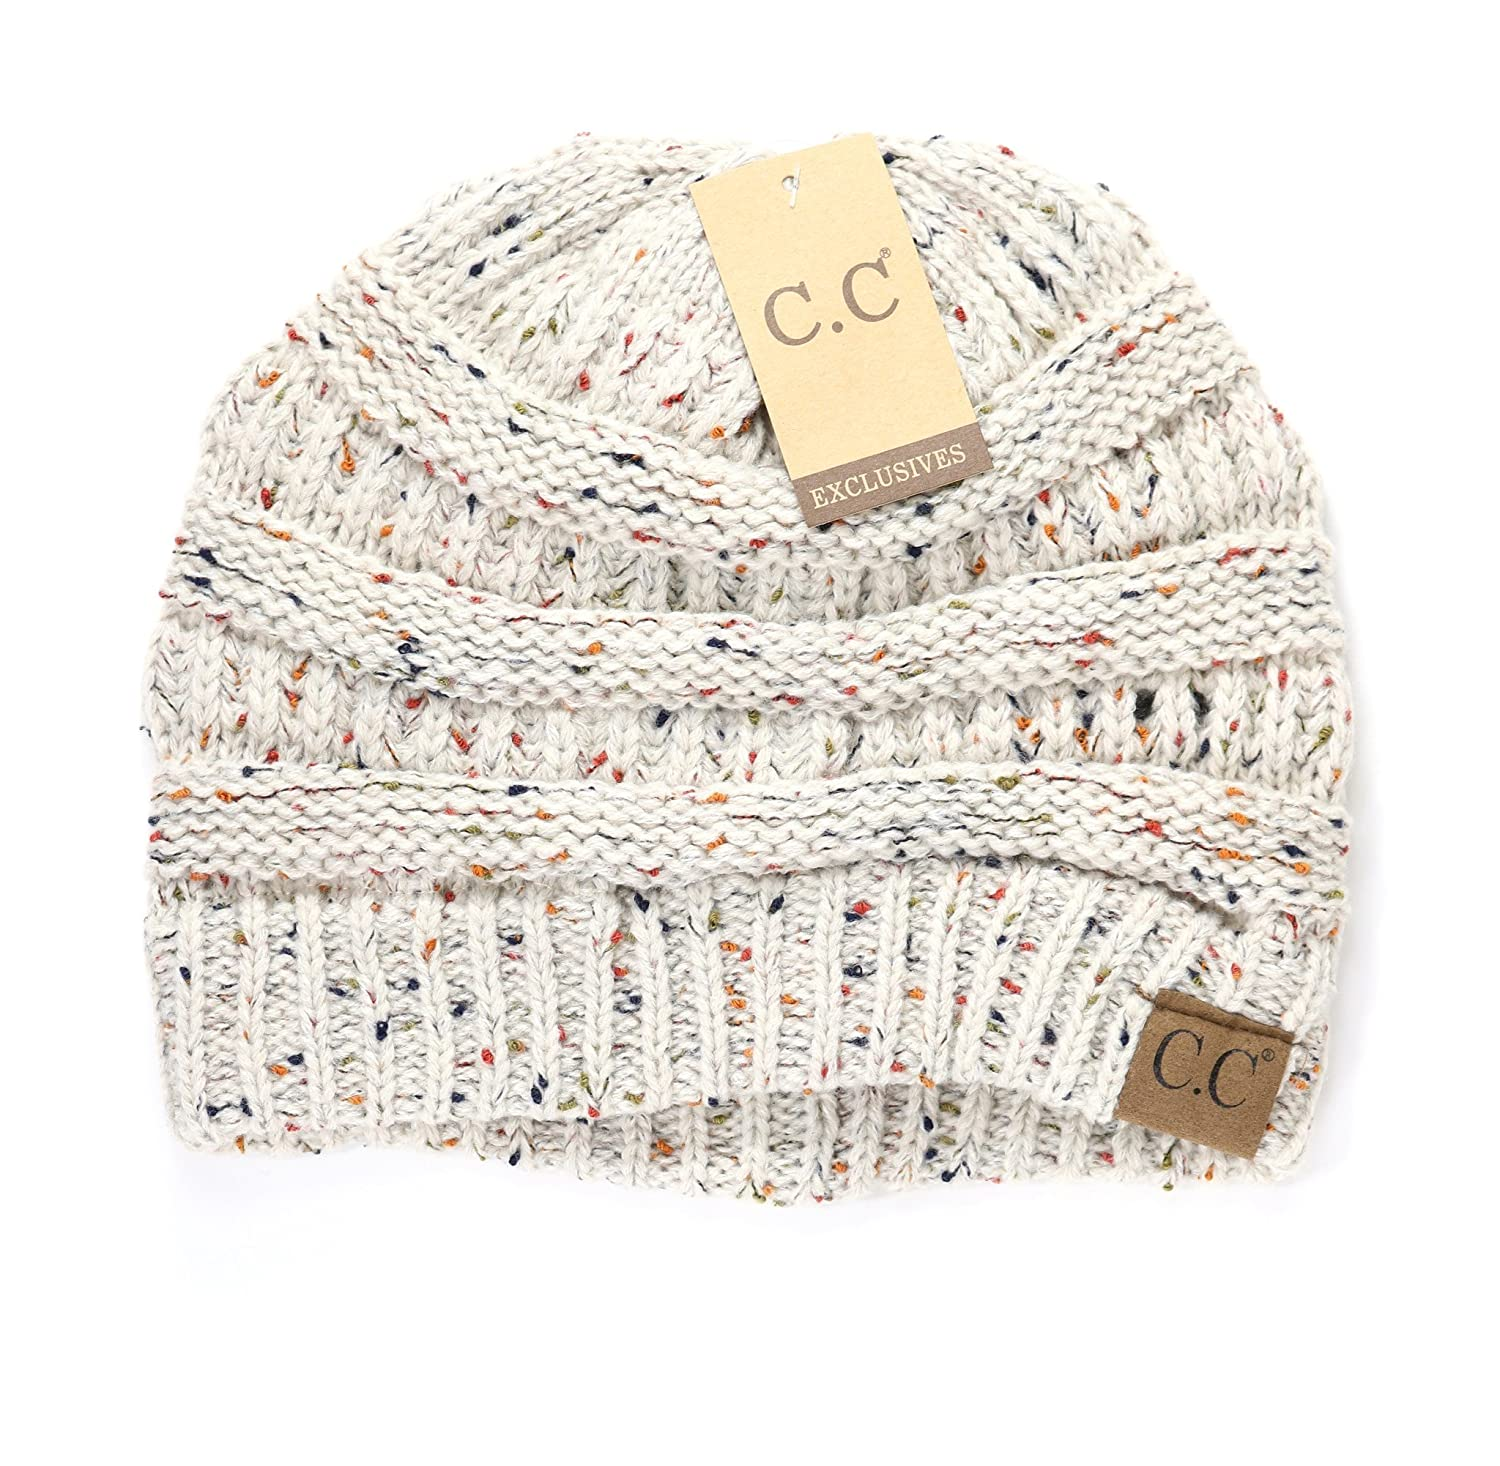 e18e275a31a Women s Flecked CC Beanies One Size Oatmeal at Amazon Women s Clothing  store